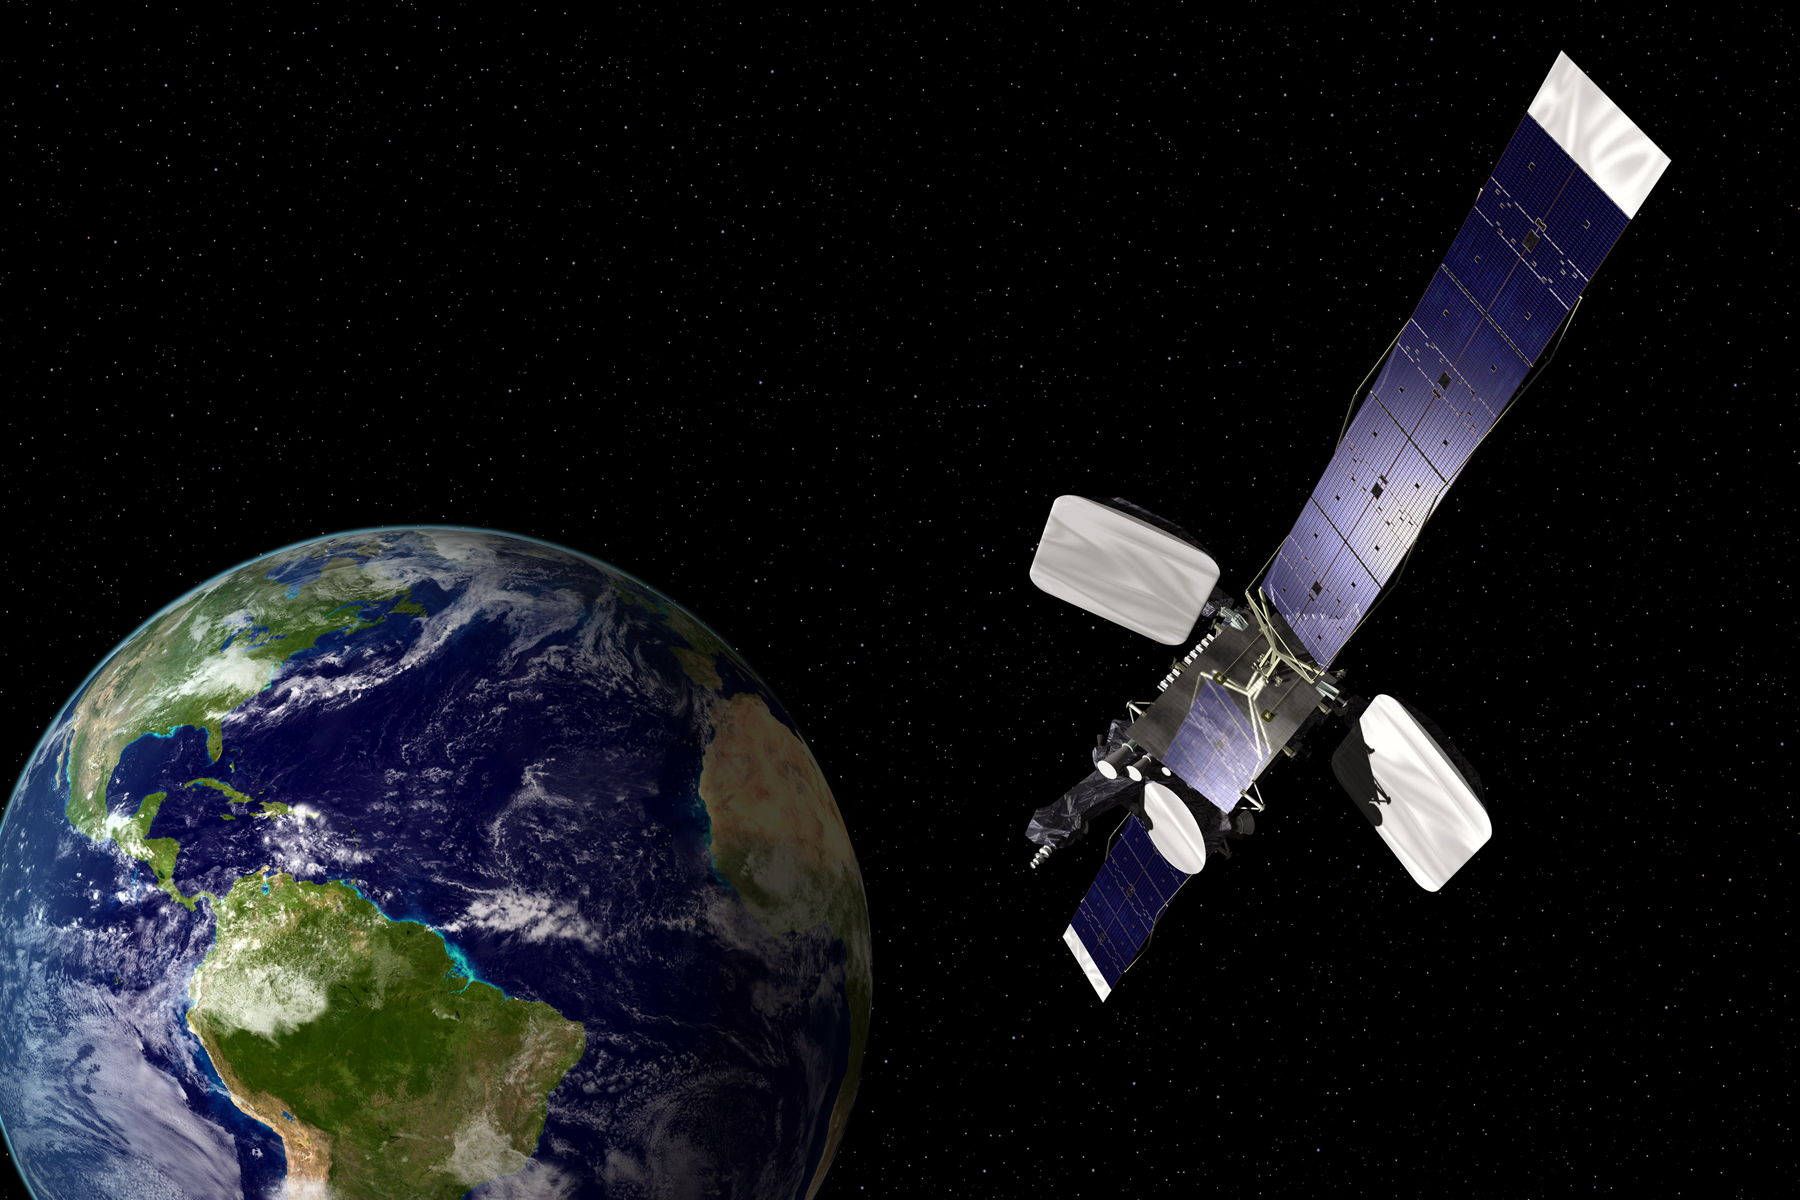 Intelsat and Kymeta Complete Major Milestones;Intelsat Acquires Equity Stake in Kymeta